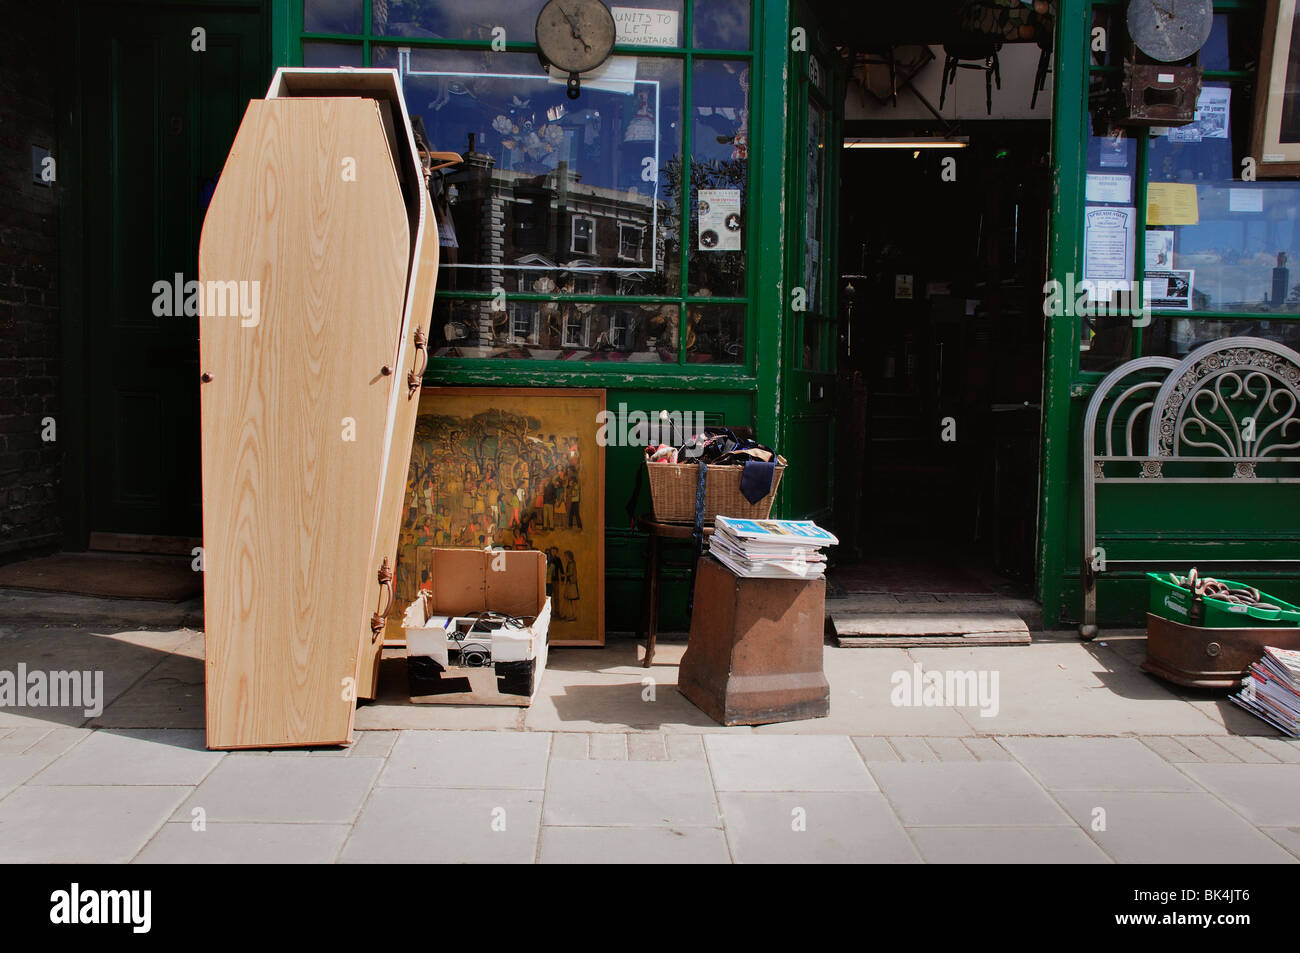 unused coffin standing outside antique junk shop - Stock Image